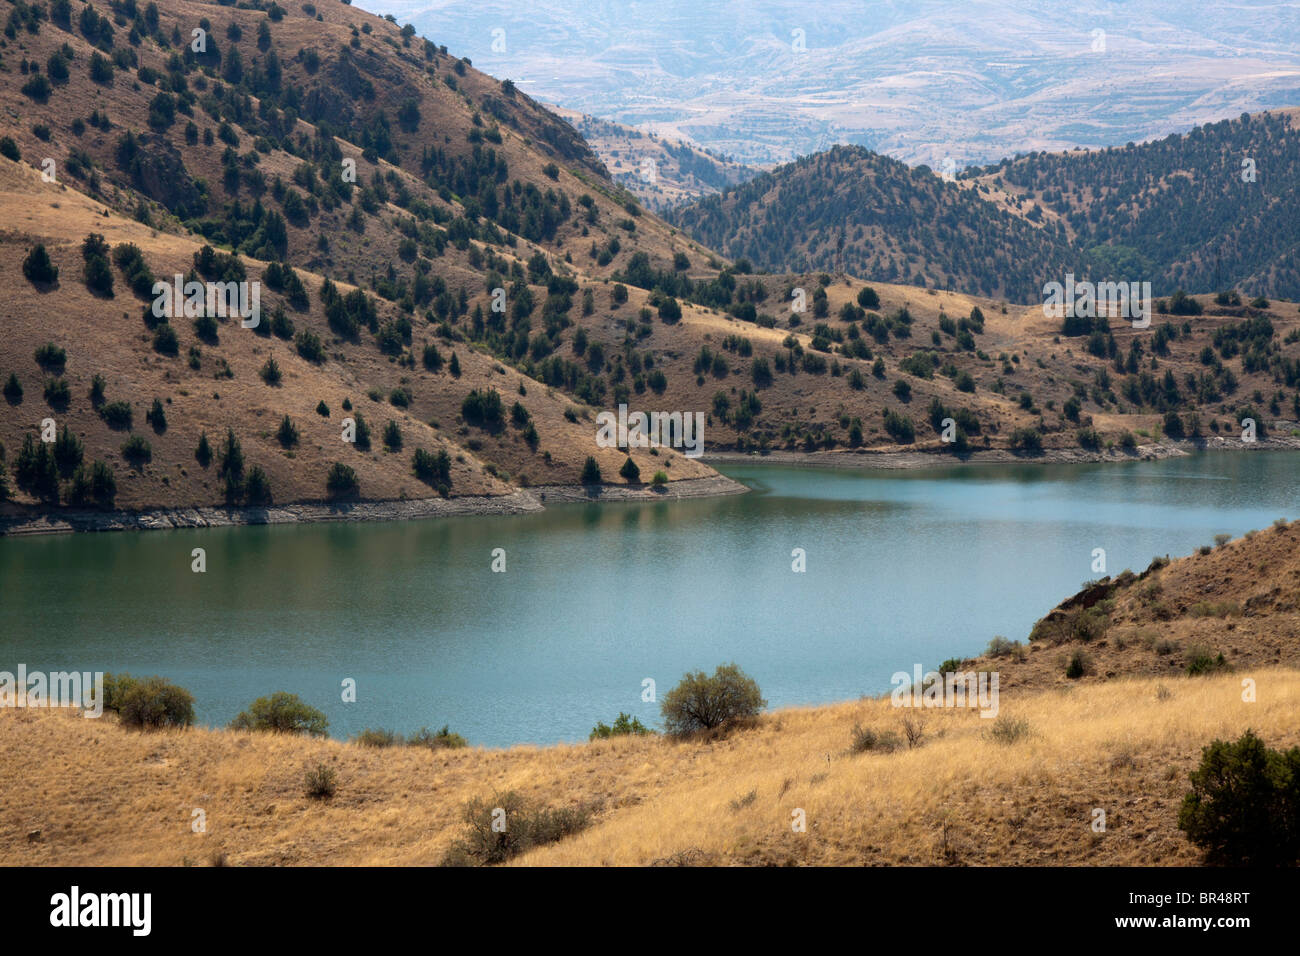 Lake in mountains of Armenia - Stock Image